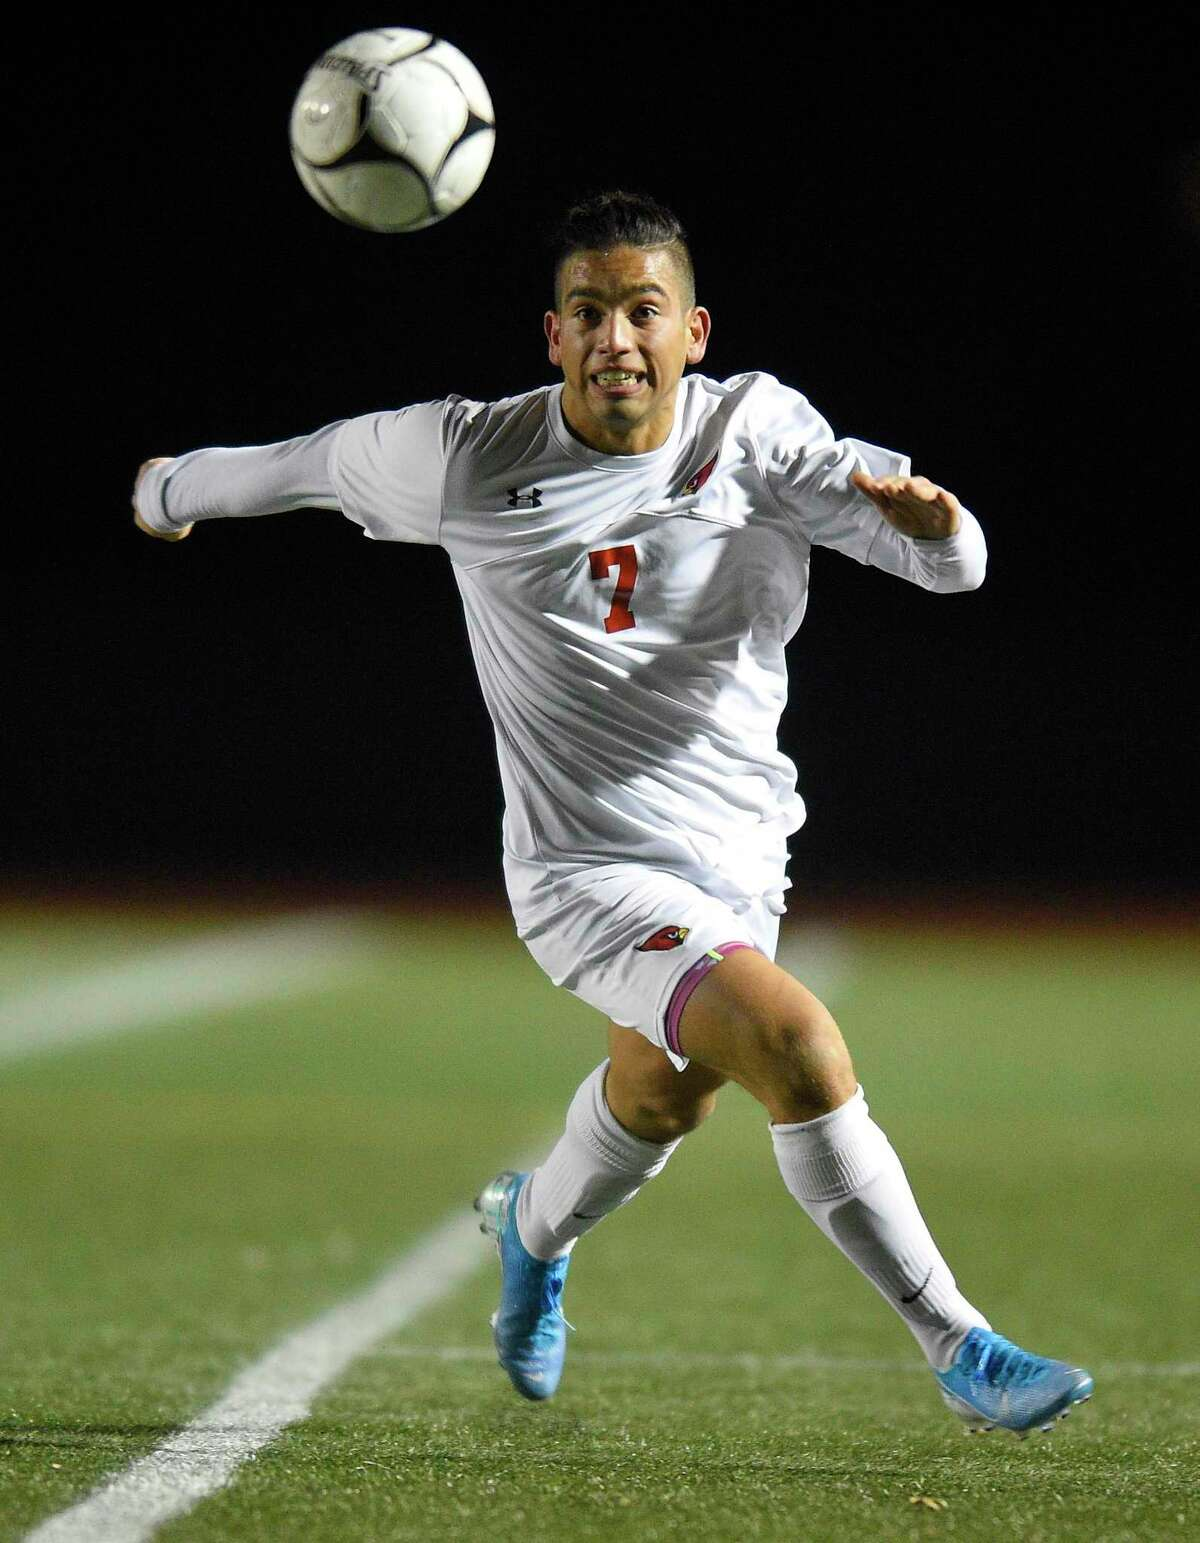 Greenwich's Farid Ghallya (7) charges the ball in the first half against Hall in a CIAC Class LL Boys Soccer State Championship at Veterans Memorial Stadium on Nov. 23, 2019 in New Britian, Connecticut.